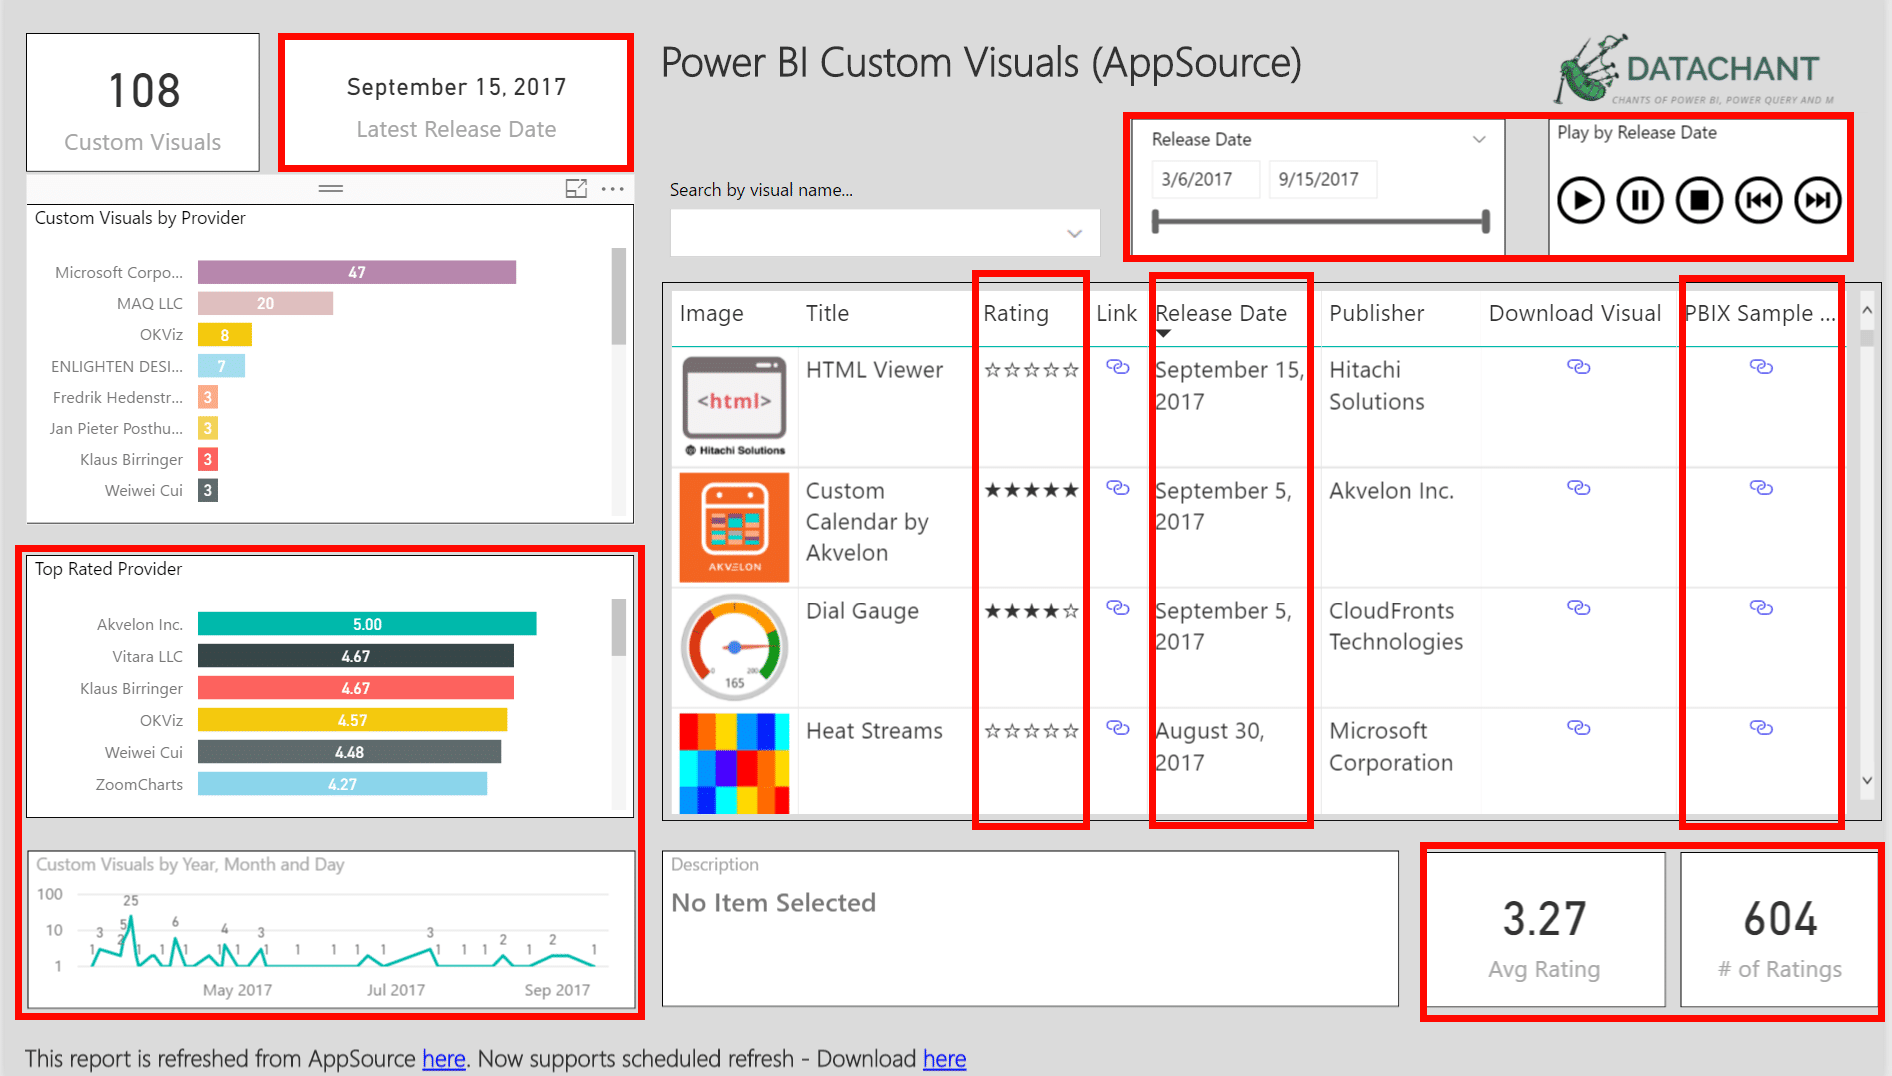 Custom Visuals in Power BI